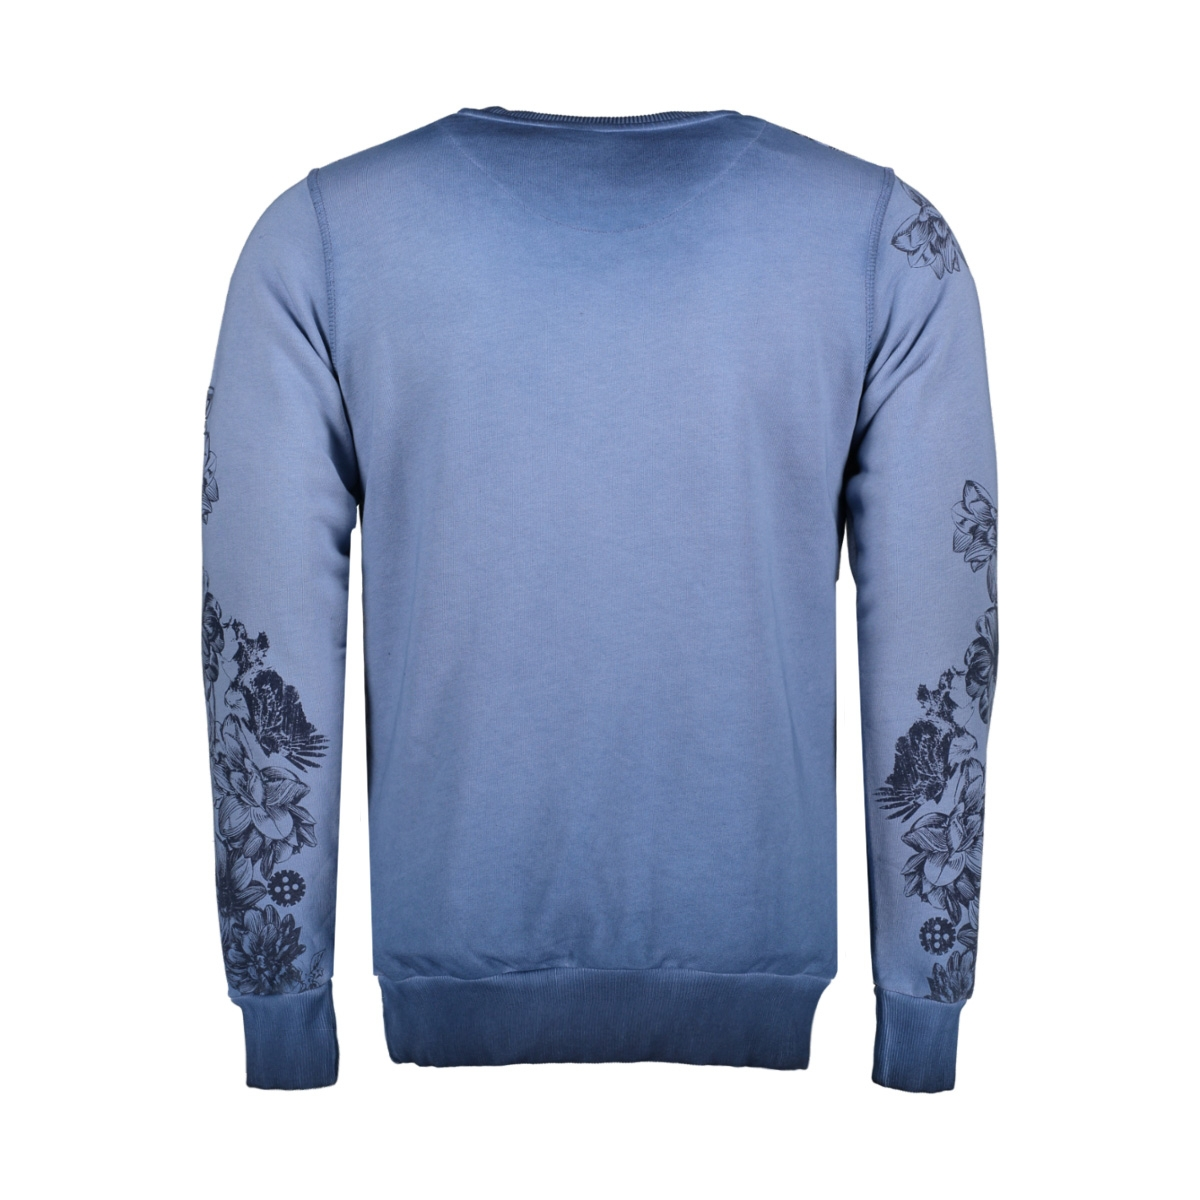 76129 gabbiano sweater blue